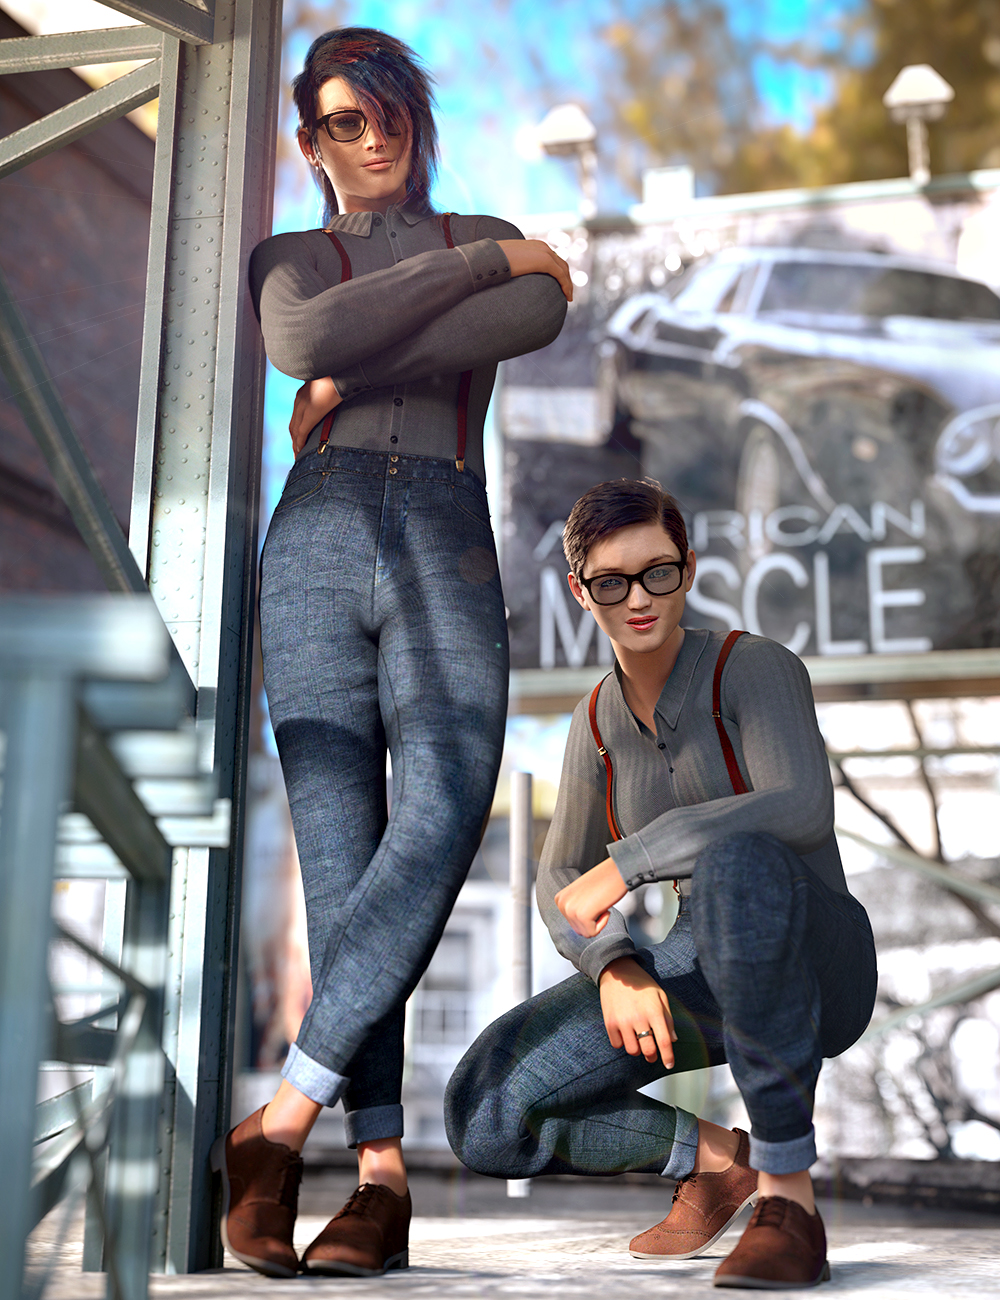 dForce Style Goals Outfit for Genesis 8 and 8.1 by: Barbara BrundonUmblefuglyArien, 3D Models by Daz 3D